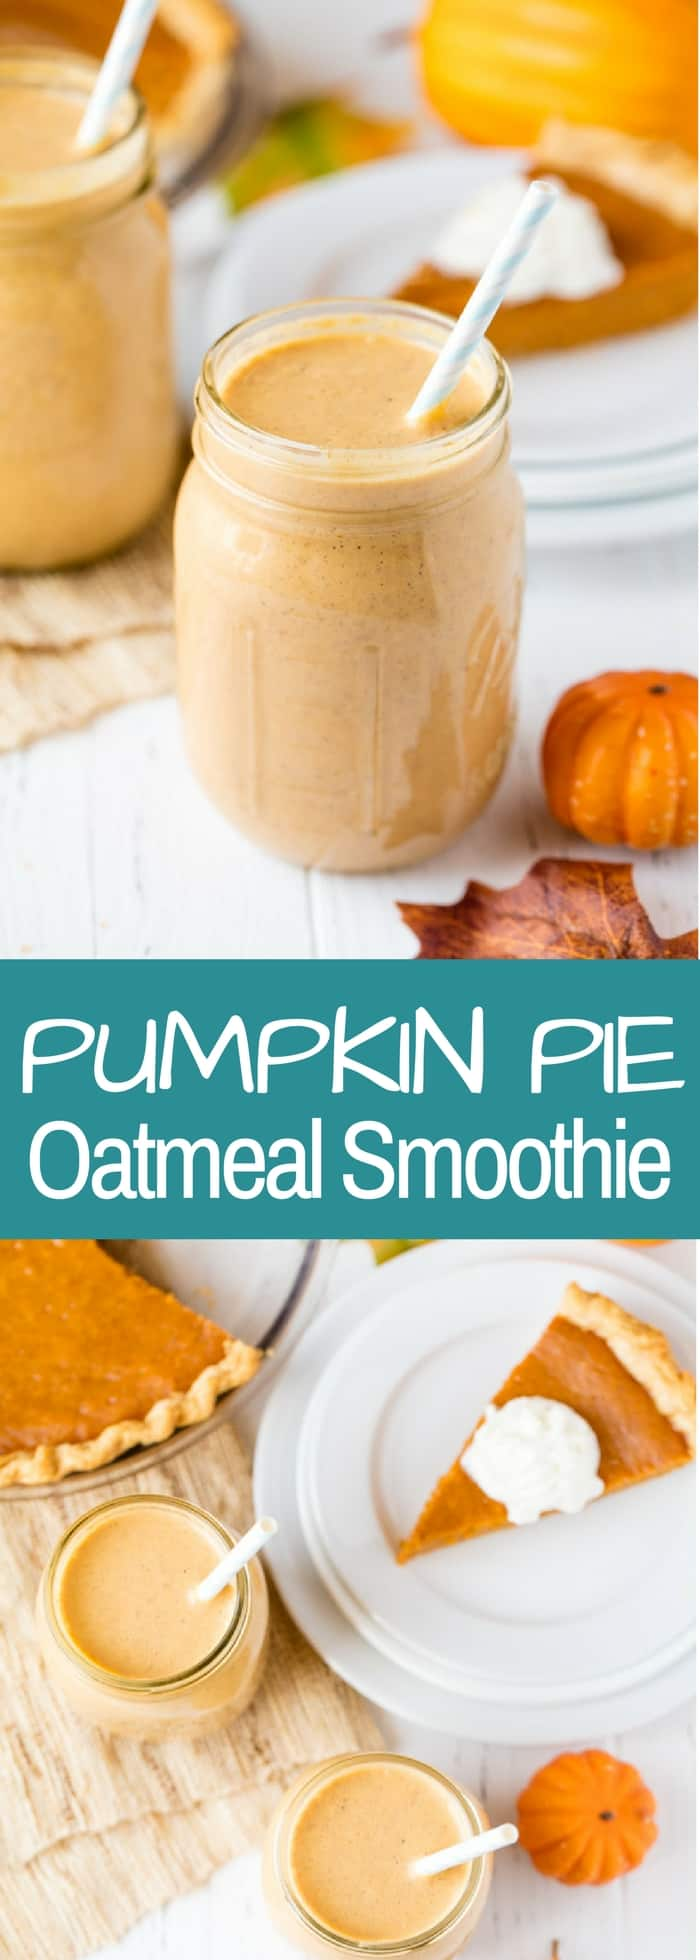 This Pumpkin Pie Oatmeal Smoothie is designed to make ahead for an easy, on-the-go breakfast that will fill you up and provide you with some nutrition along the way.